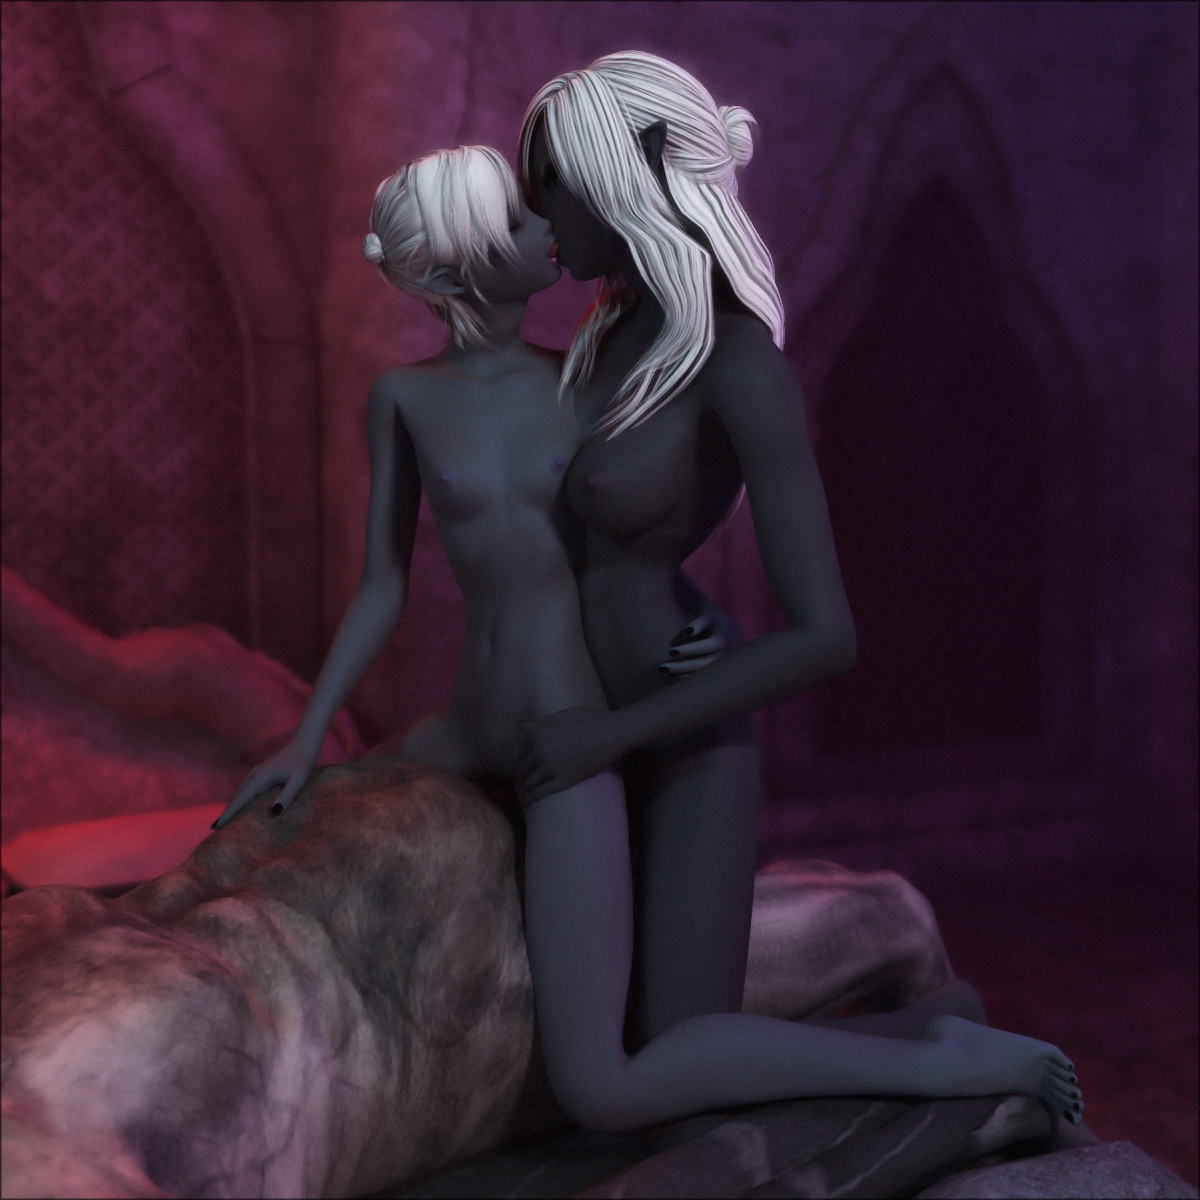 Dark elf sex pic adult pictures